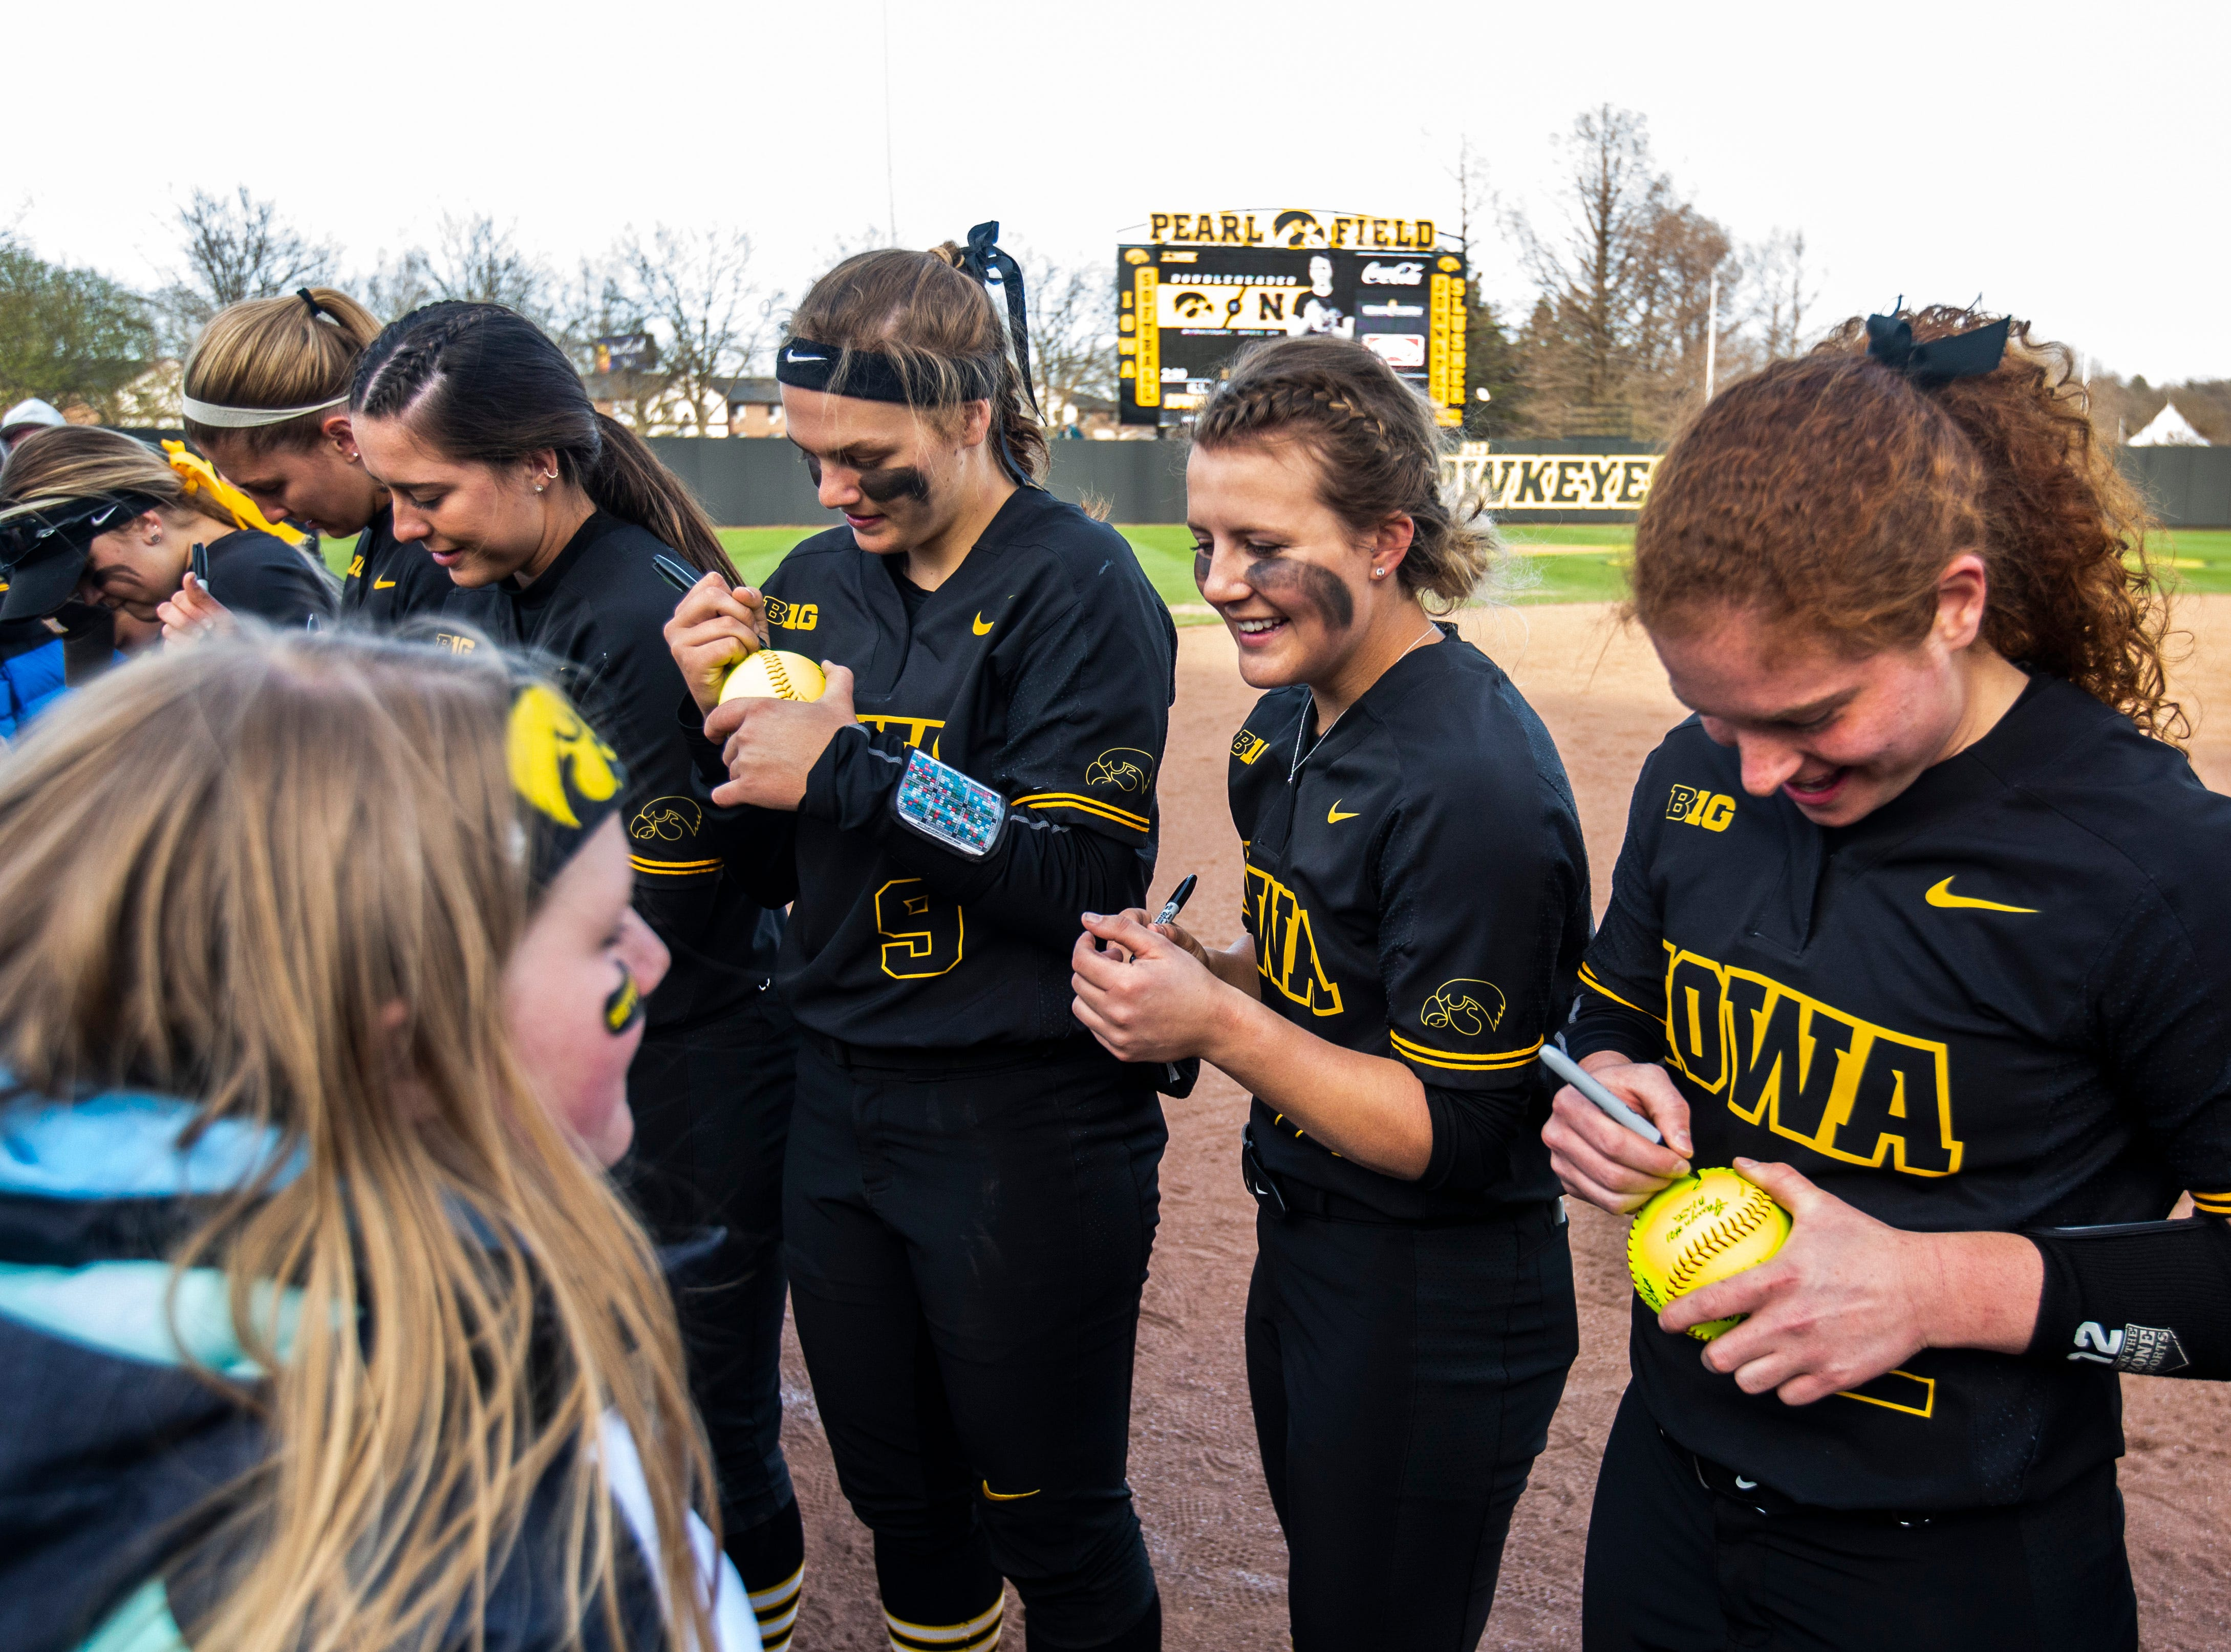 Iowa outfielder Havyn Monteer, second from right, signs a softball for a fan during a NCAA Big Ten Conference softball game on Saturday, April 13, 2019, at Bob Pearl Field in Coralville, Iowa. The Hawkeyes defeated Illinois, 4-3, for the first home win of the season.